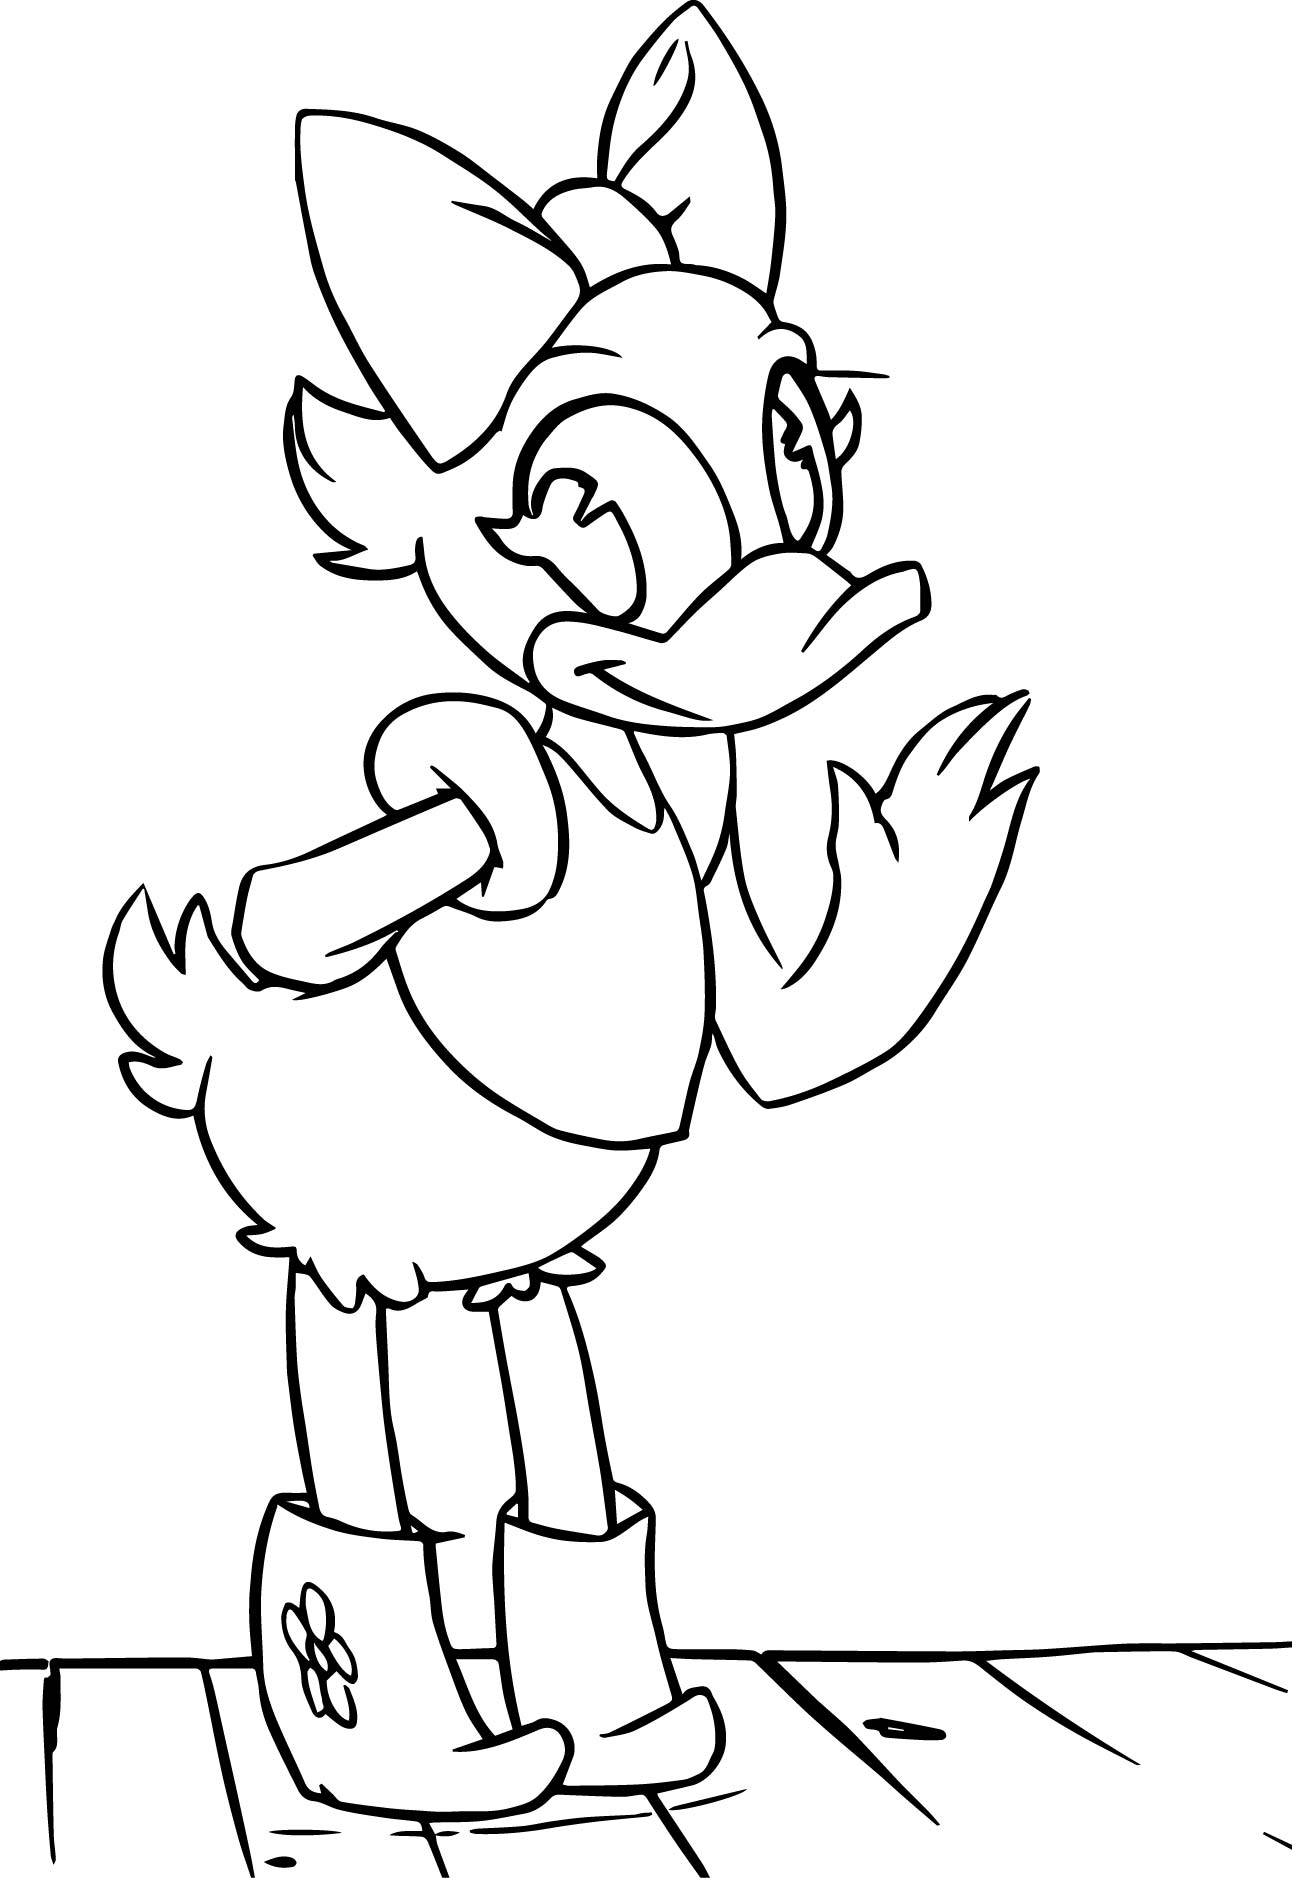 daisy duck face pages coloring pages